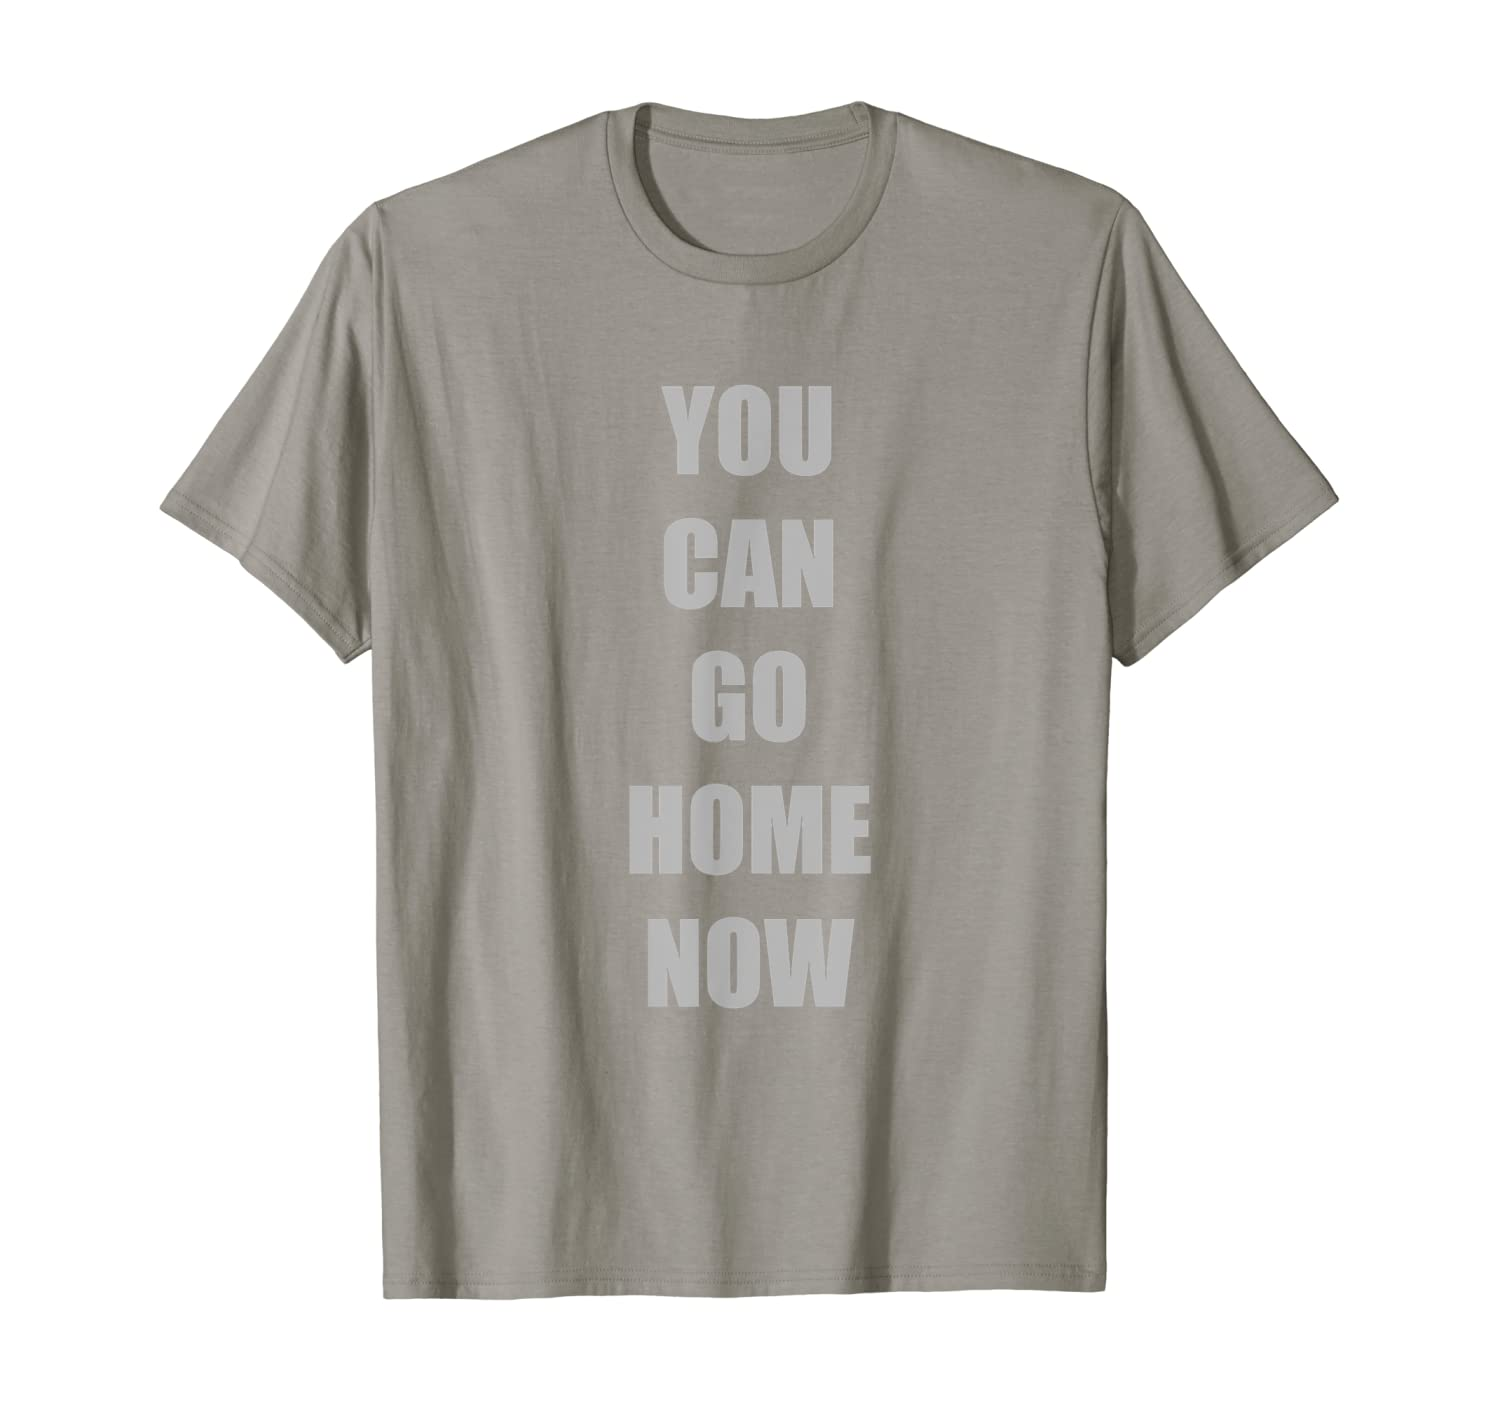 You Can Go Home Now Funny Gym Fitness Workout Motivational T-Shirt